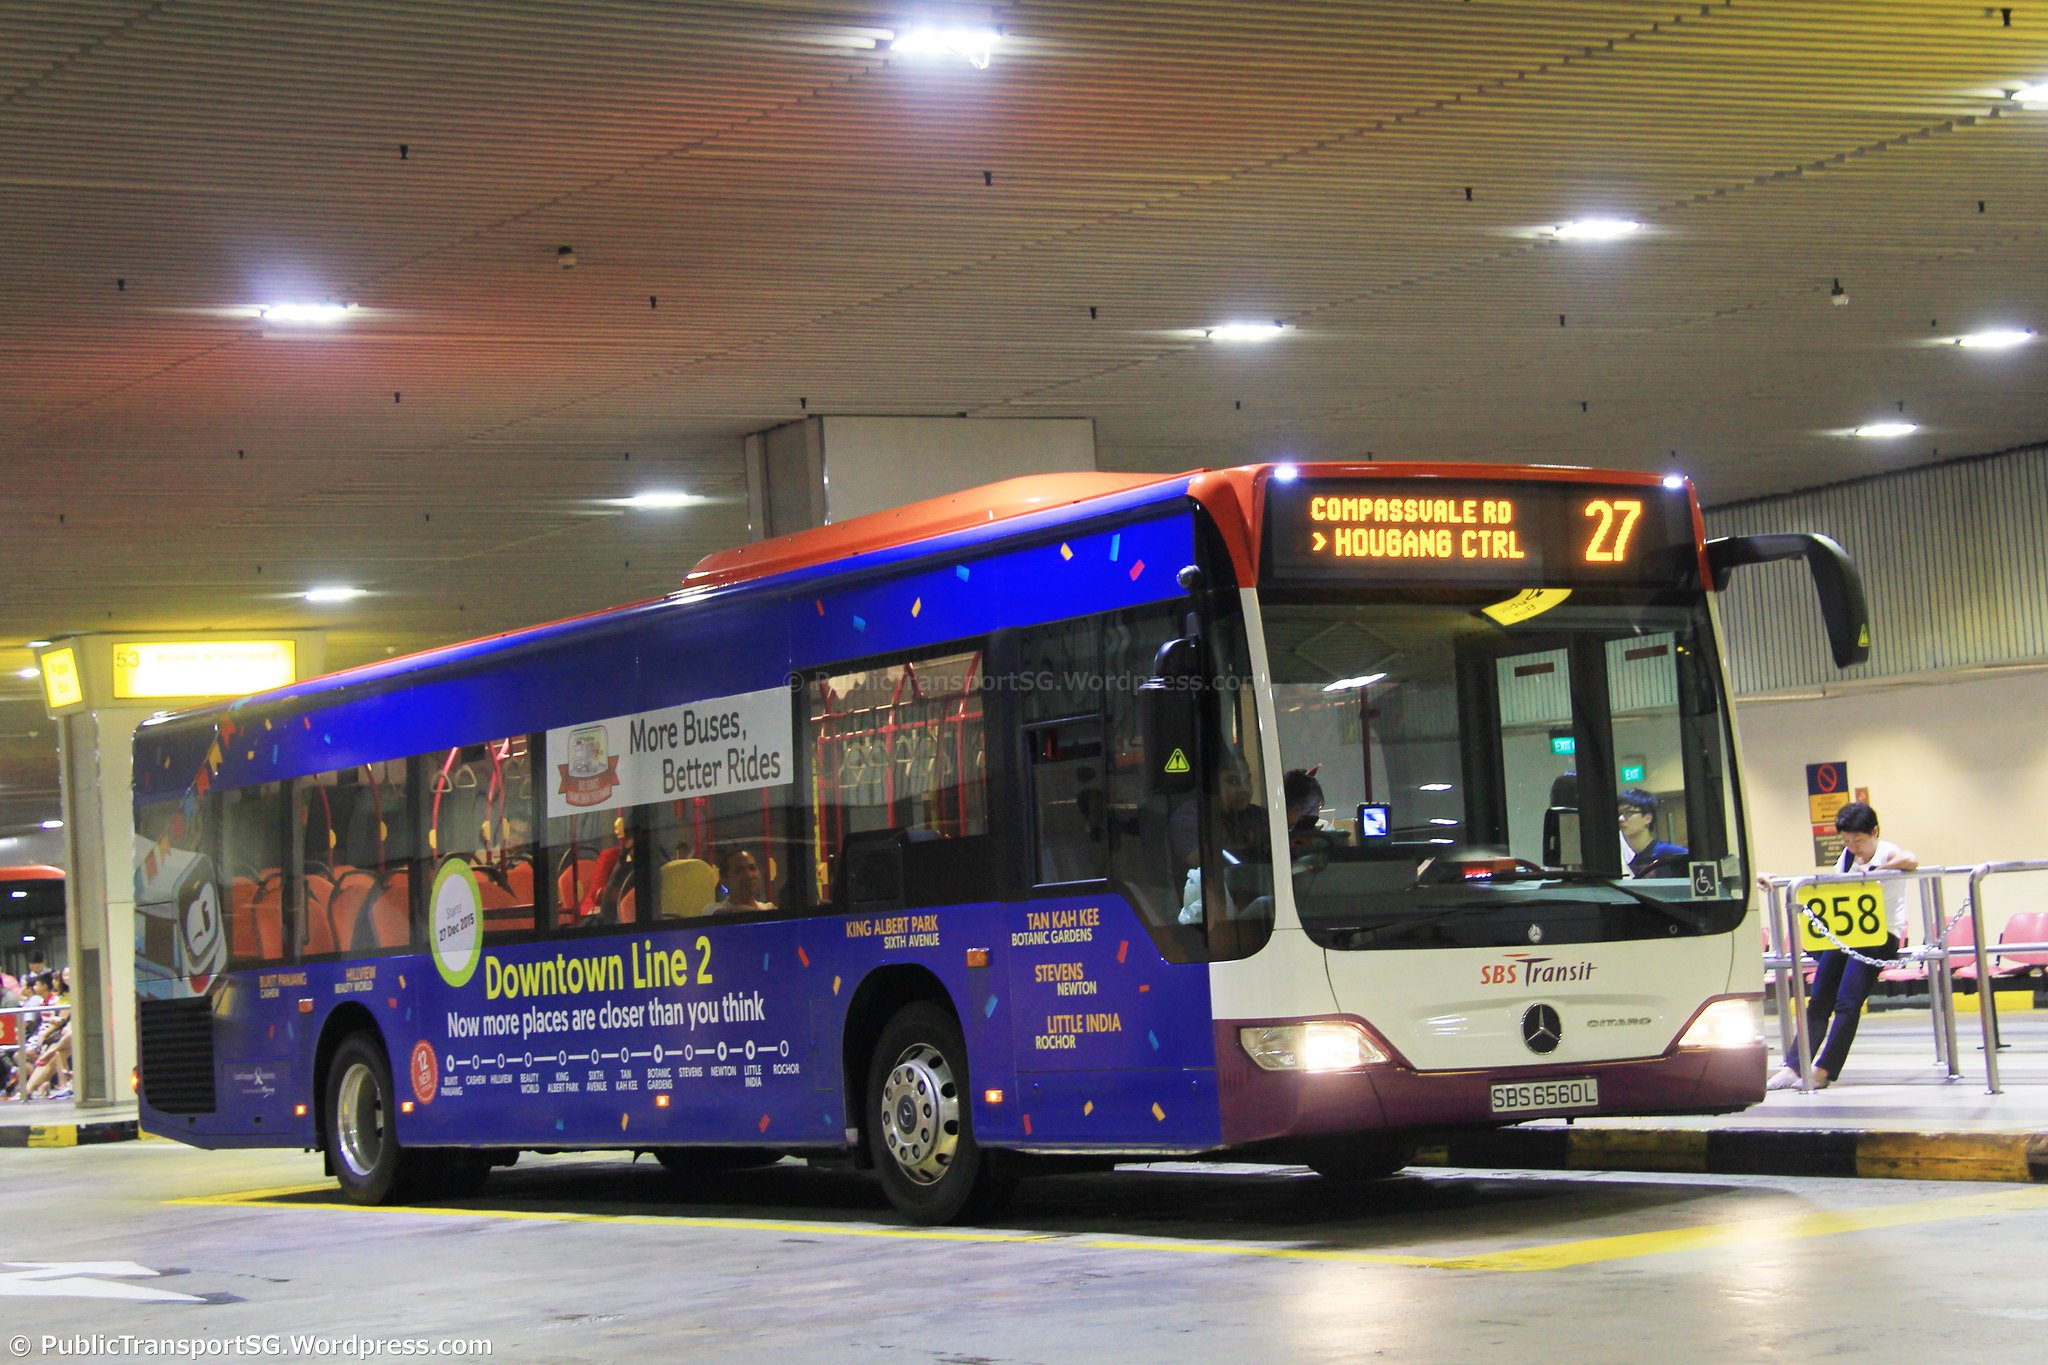 Sbs transit bus service 27 public transport sg for Mercedes benz downtown service